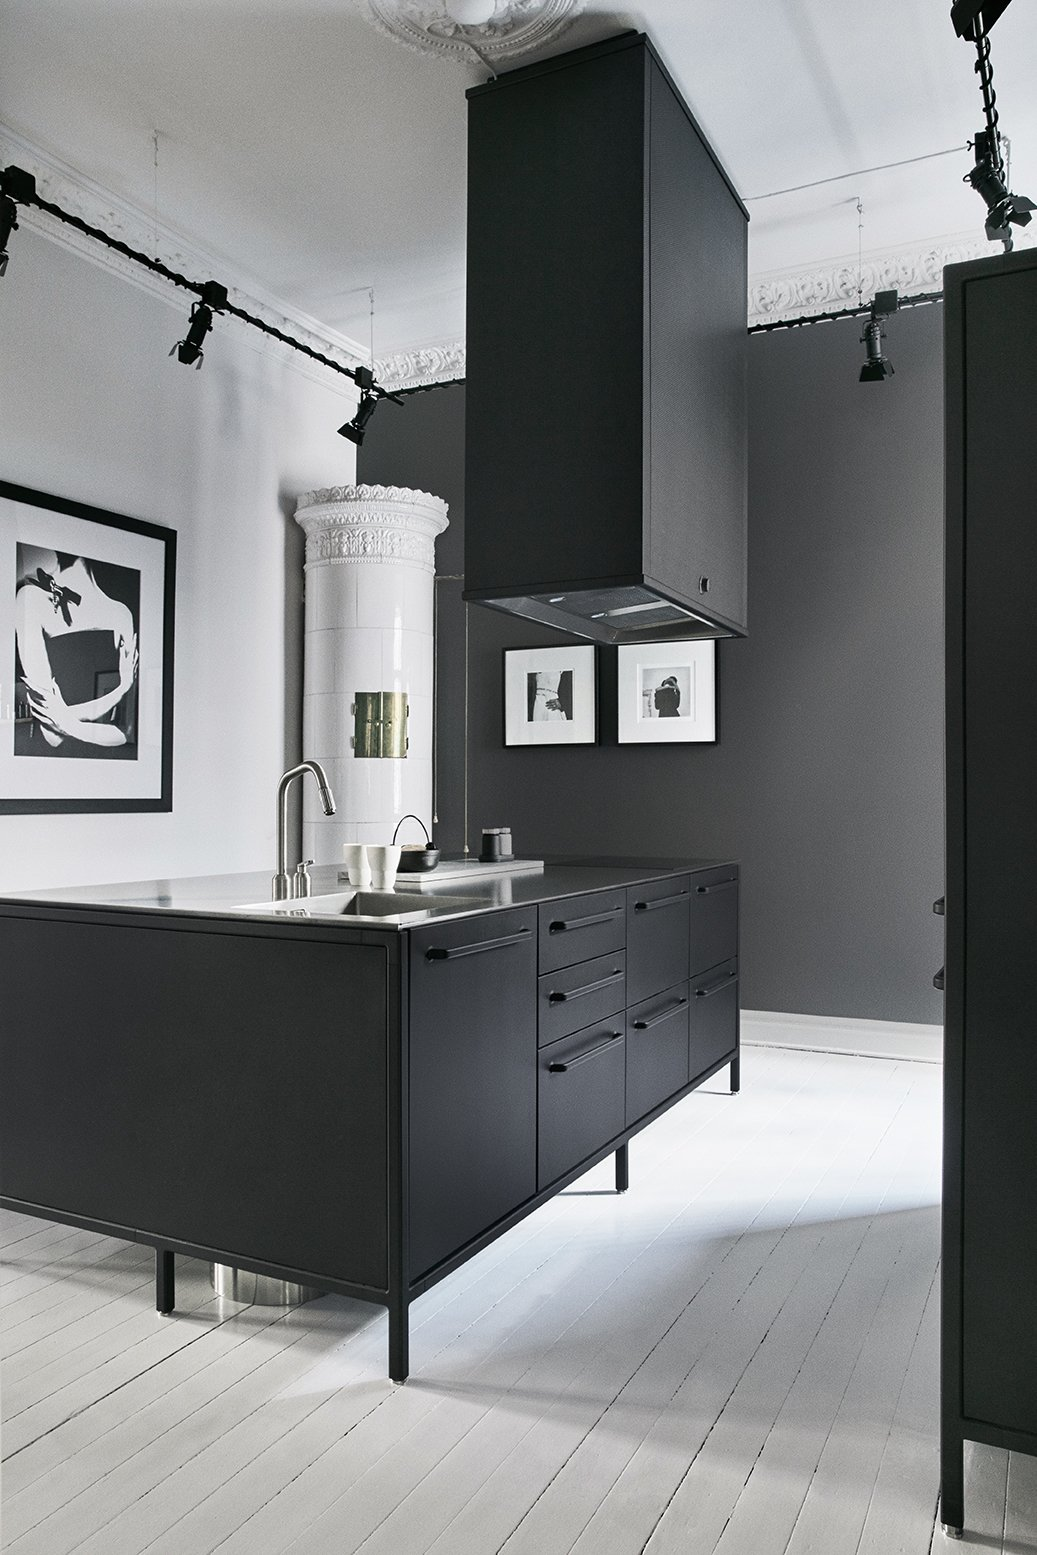 Kitchen, Metal Counter, Drop In Sink, Track Lighting, Cooktops, Range Hood, and Painted Wood Floor When creative director Martin Ringqvist and his wife, My, a teacher, moved back to Sweden after a year in Los Angeles, they wanted an authentic, warm space to live in with their two children. The kitchen's matte-black Vipp system is paired with an antique white ceramic tile stove that was typical in the late 19th century. Although it's not operable, the stove is used by the couple as a staging ground for illuminated candles and a storage space for an iPad that controls the home's sound system.  Photo 6 of 10 in Dwell's Top 10 Kitchens of 2017 from A Careful Renovation Brings a 19th-Century Flat in Gothenburg Back to Life